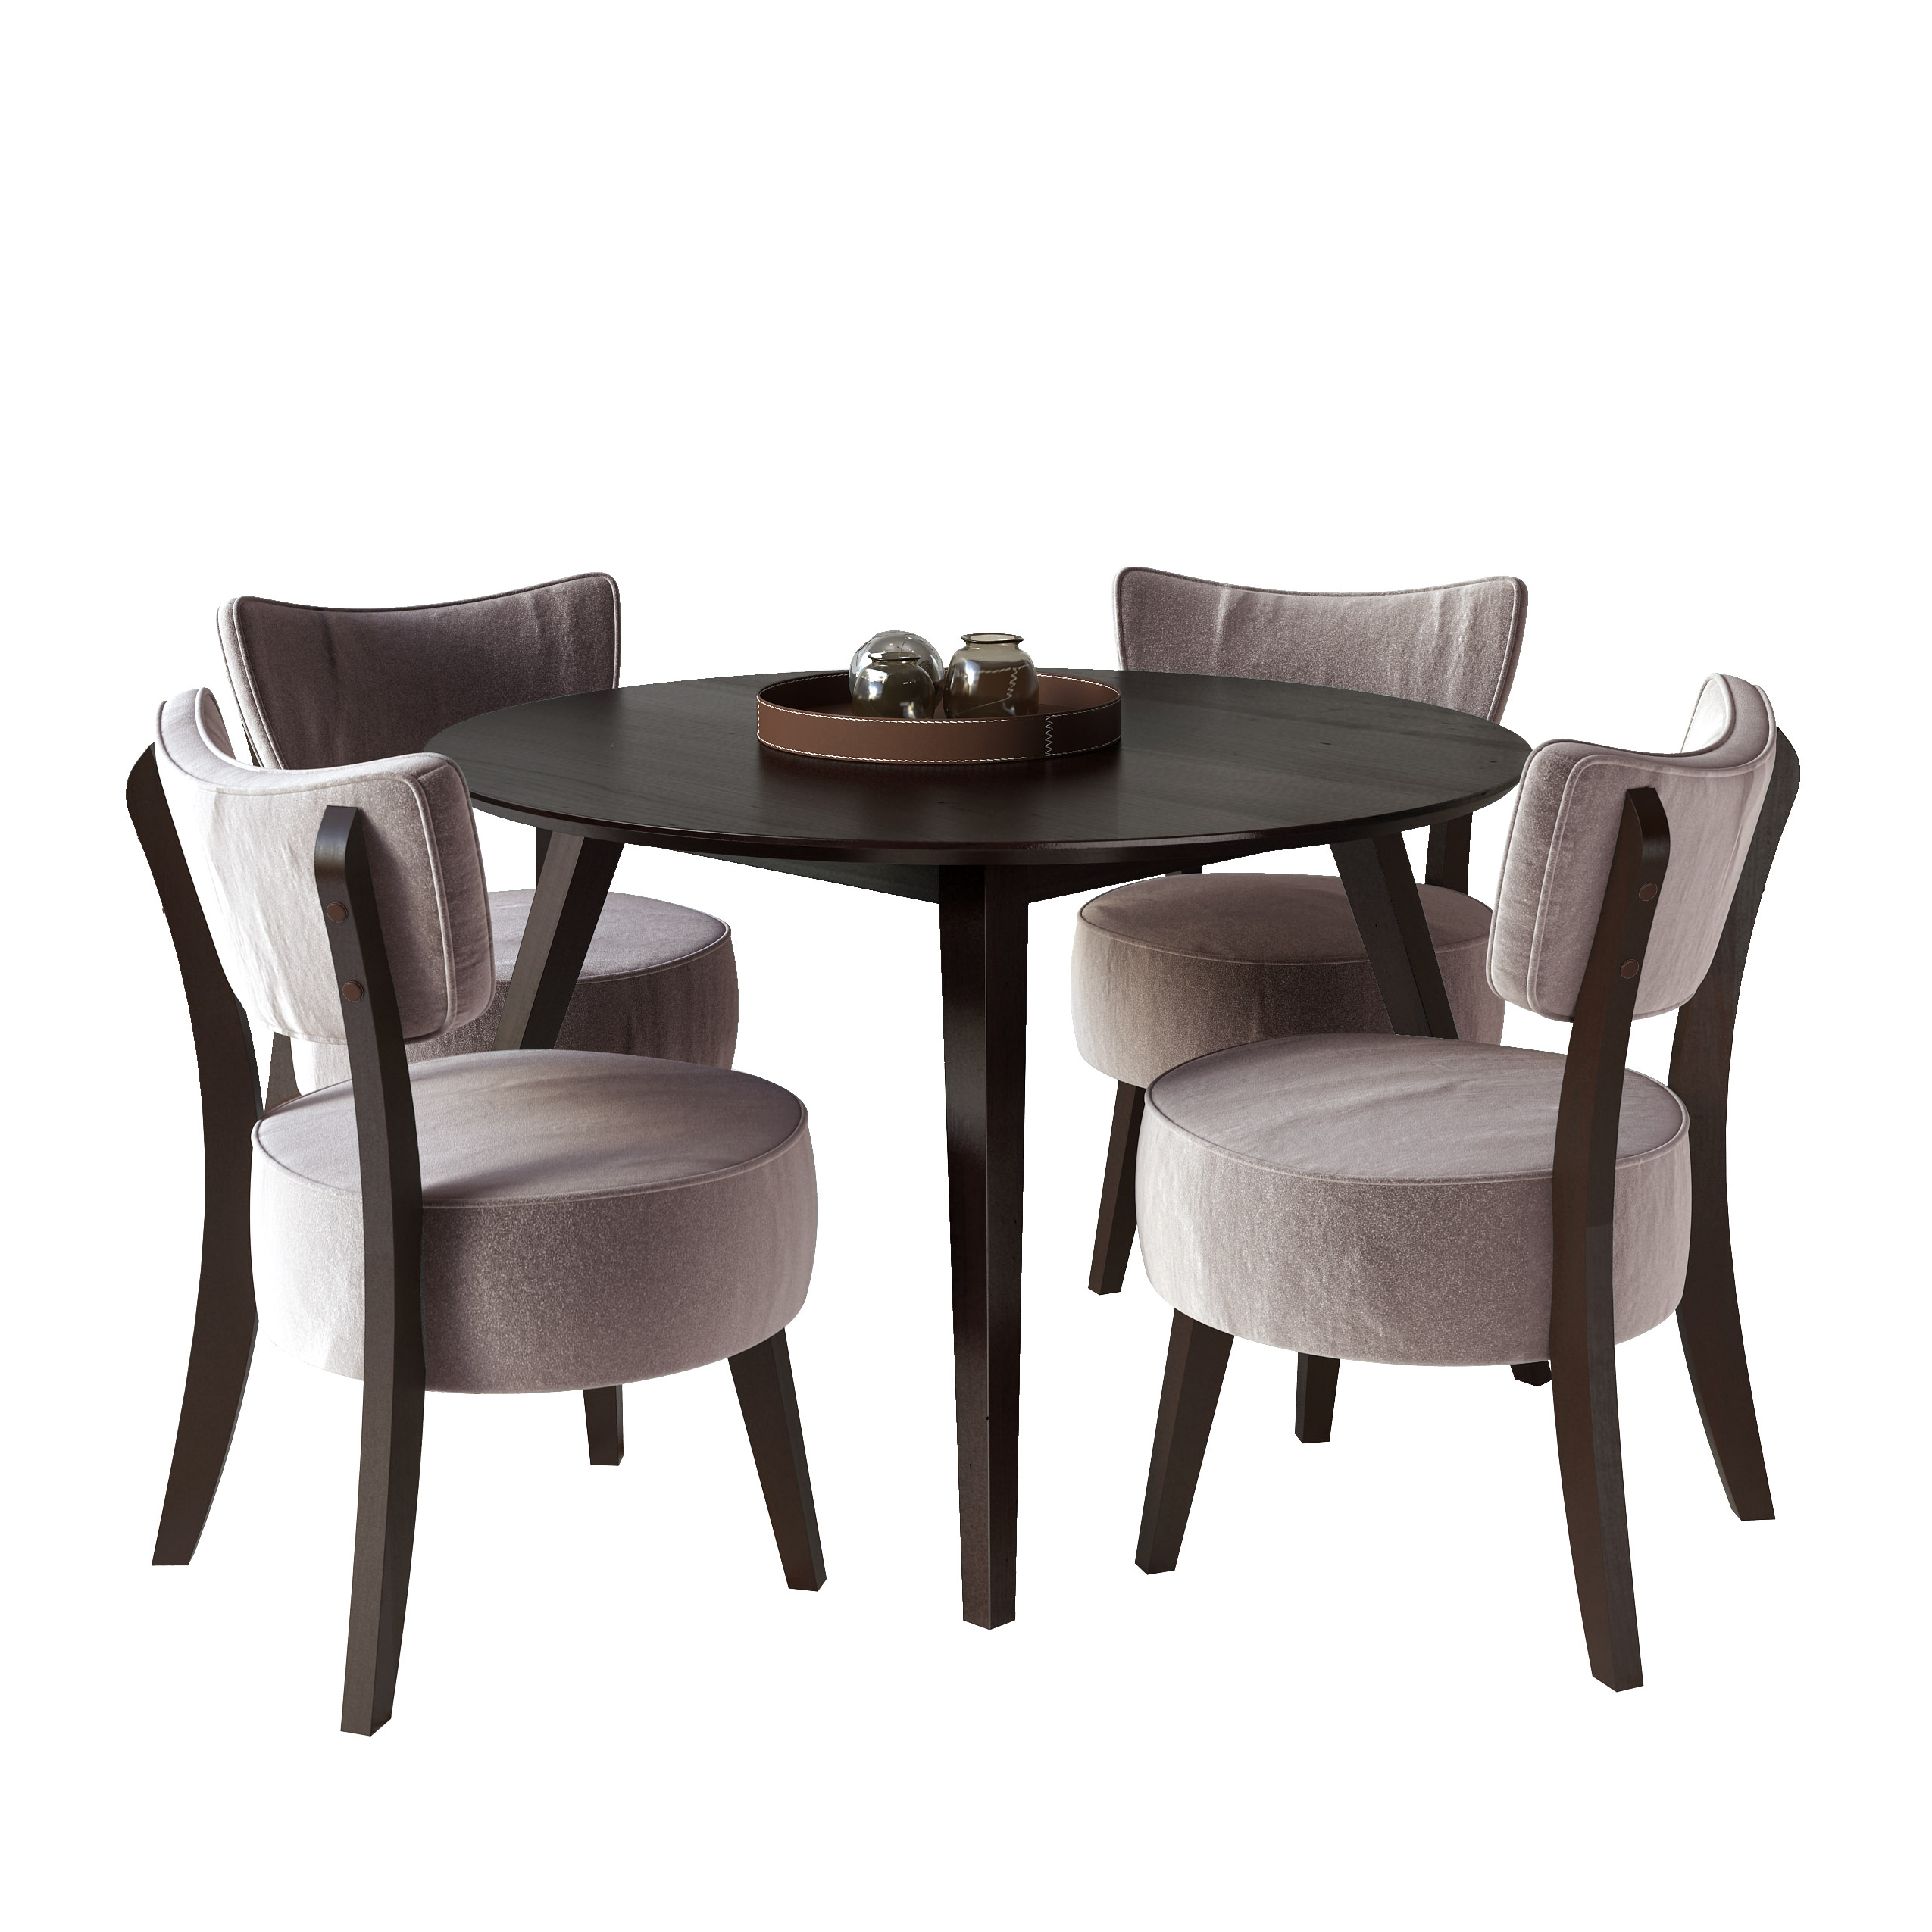 Atwood Transitional Rectangular Dining Tables For Favorite Corliving Atwood 42 In X 42 In Cappuccino Stained Square Dining Table (View 22 of 30)